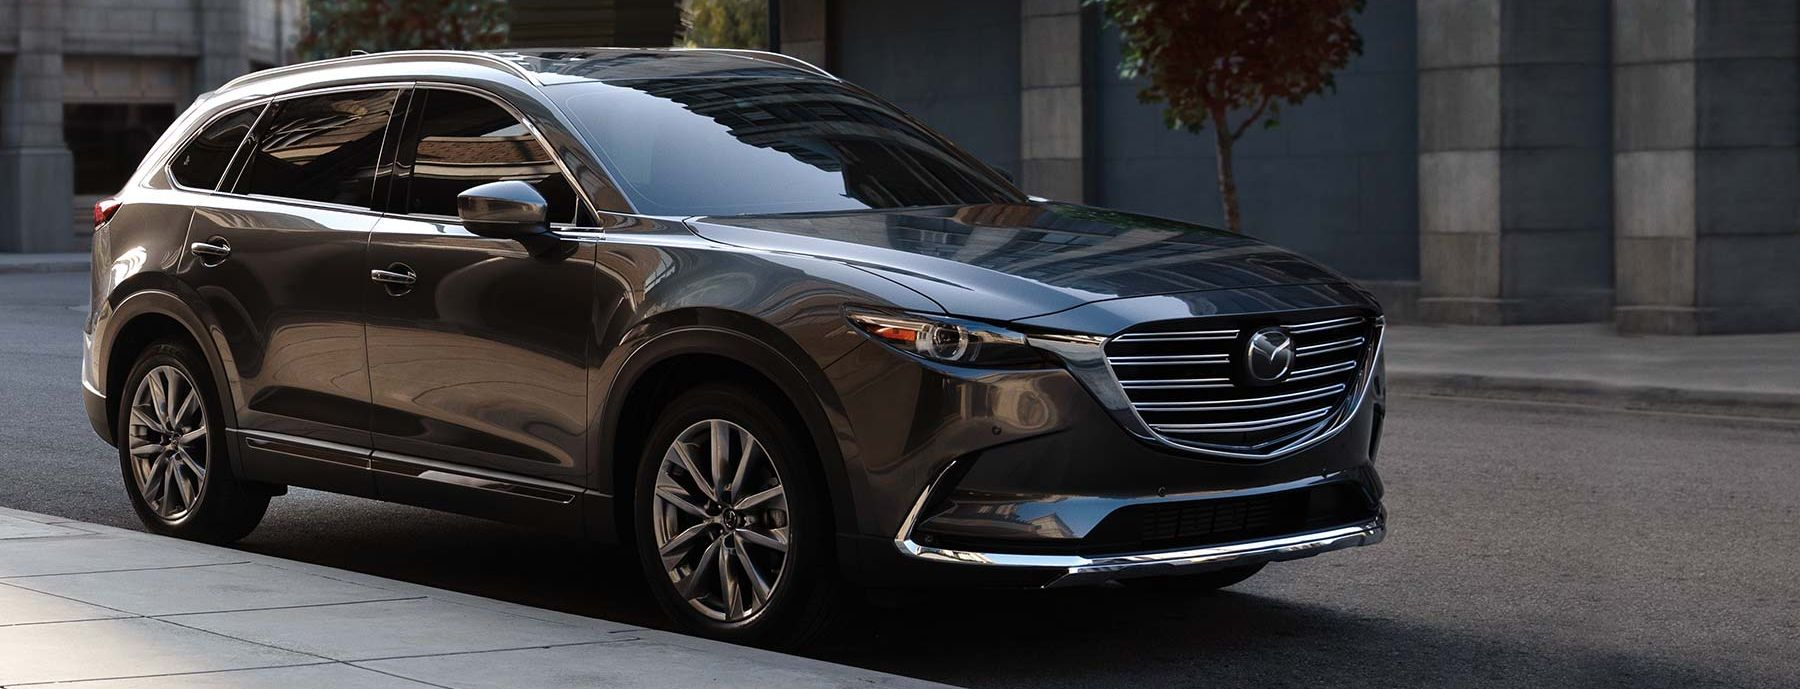 2019 Mazda CX-9 Financing near Angleton, TX